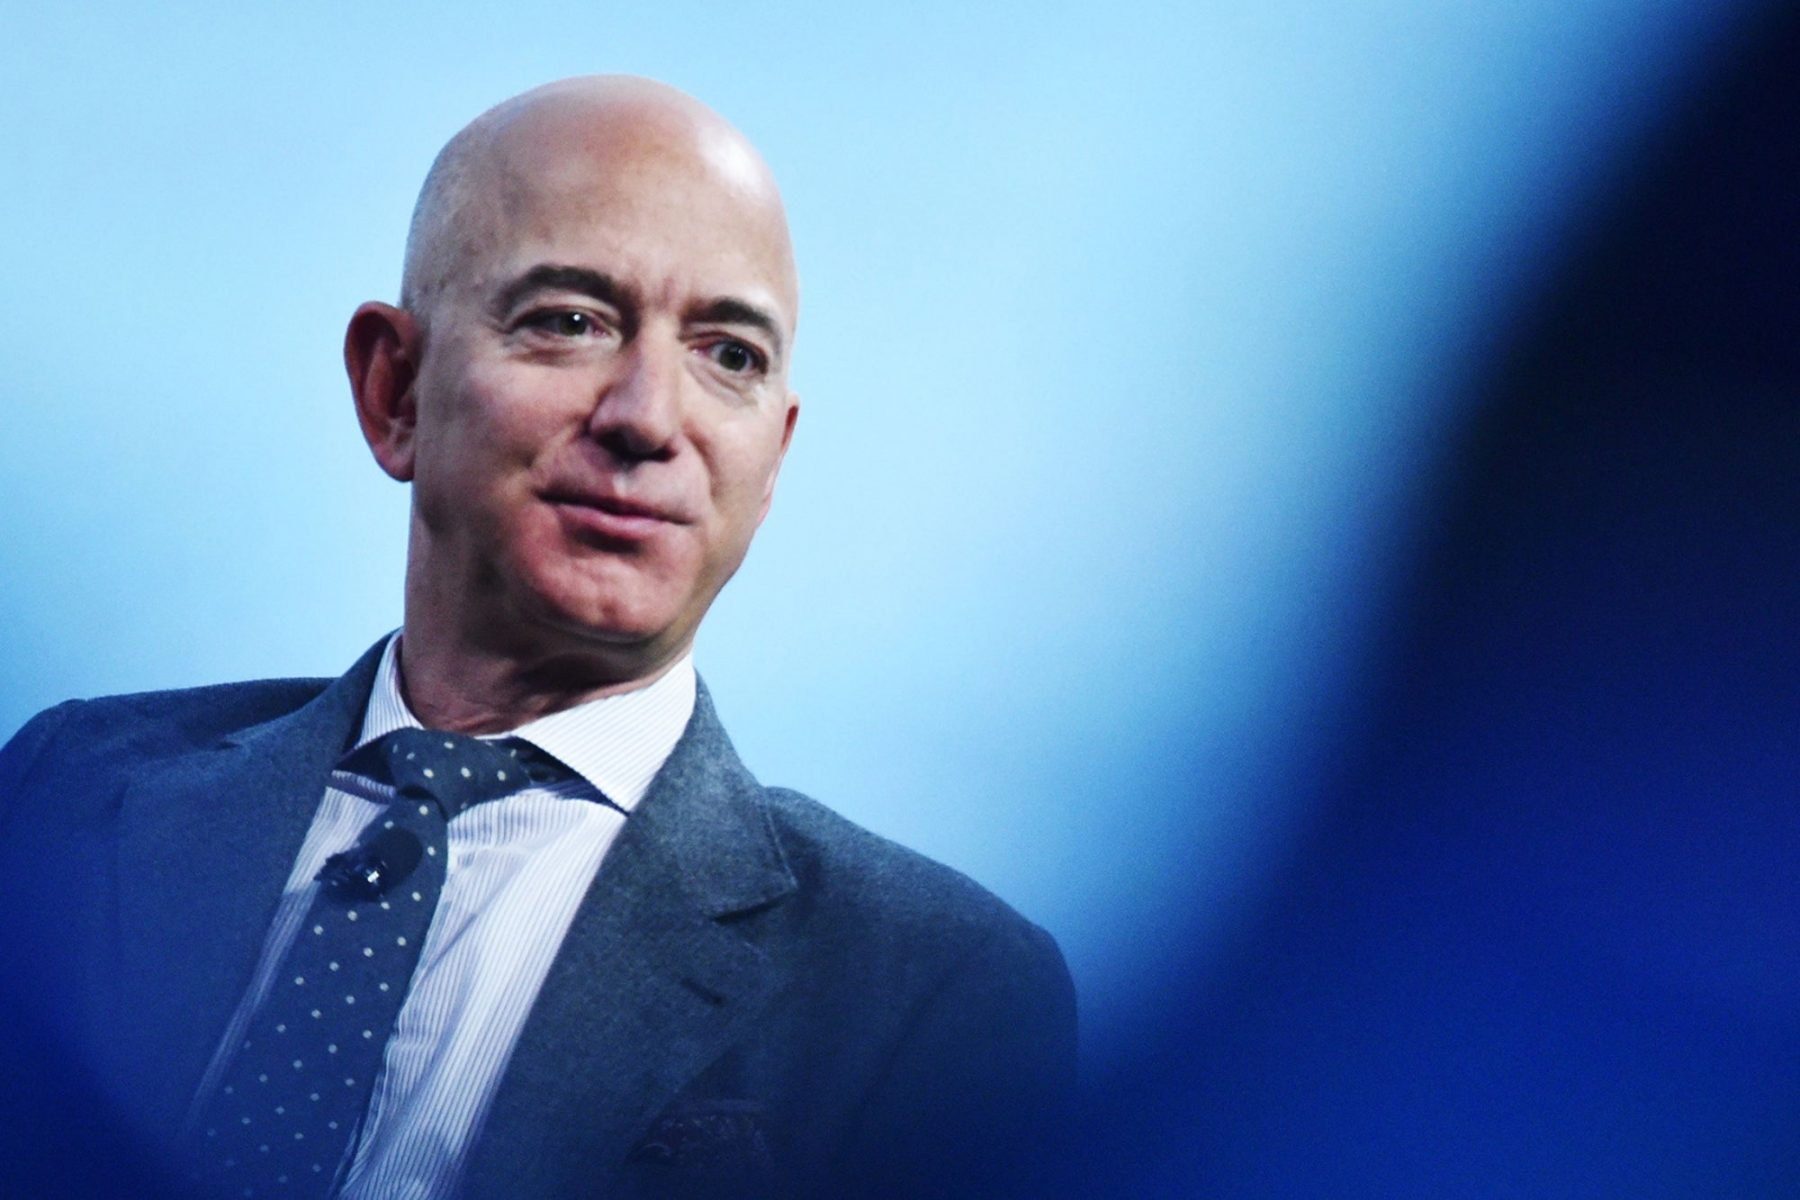 jeff-bezos-reportedly-now-owns-$119-million-worth-of-real-estate-in-a-single-building-in-new-york-city